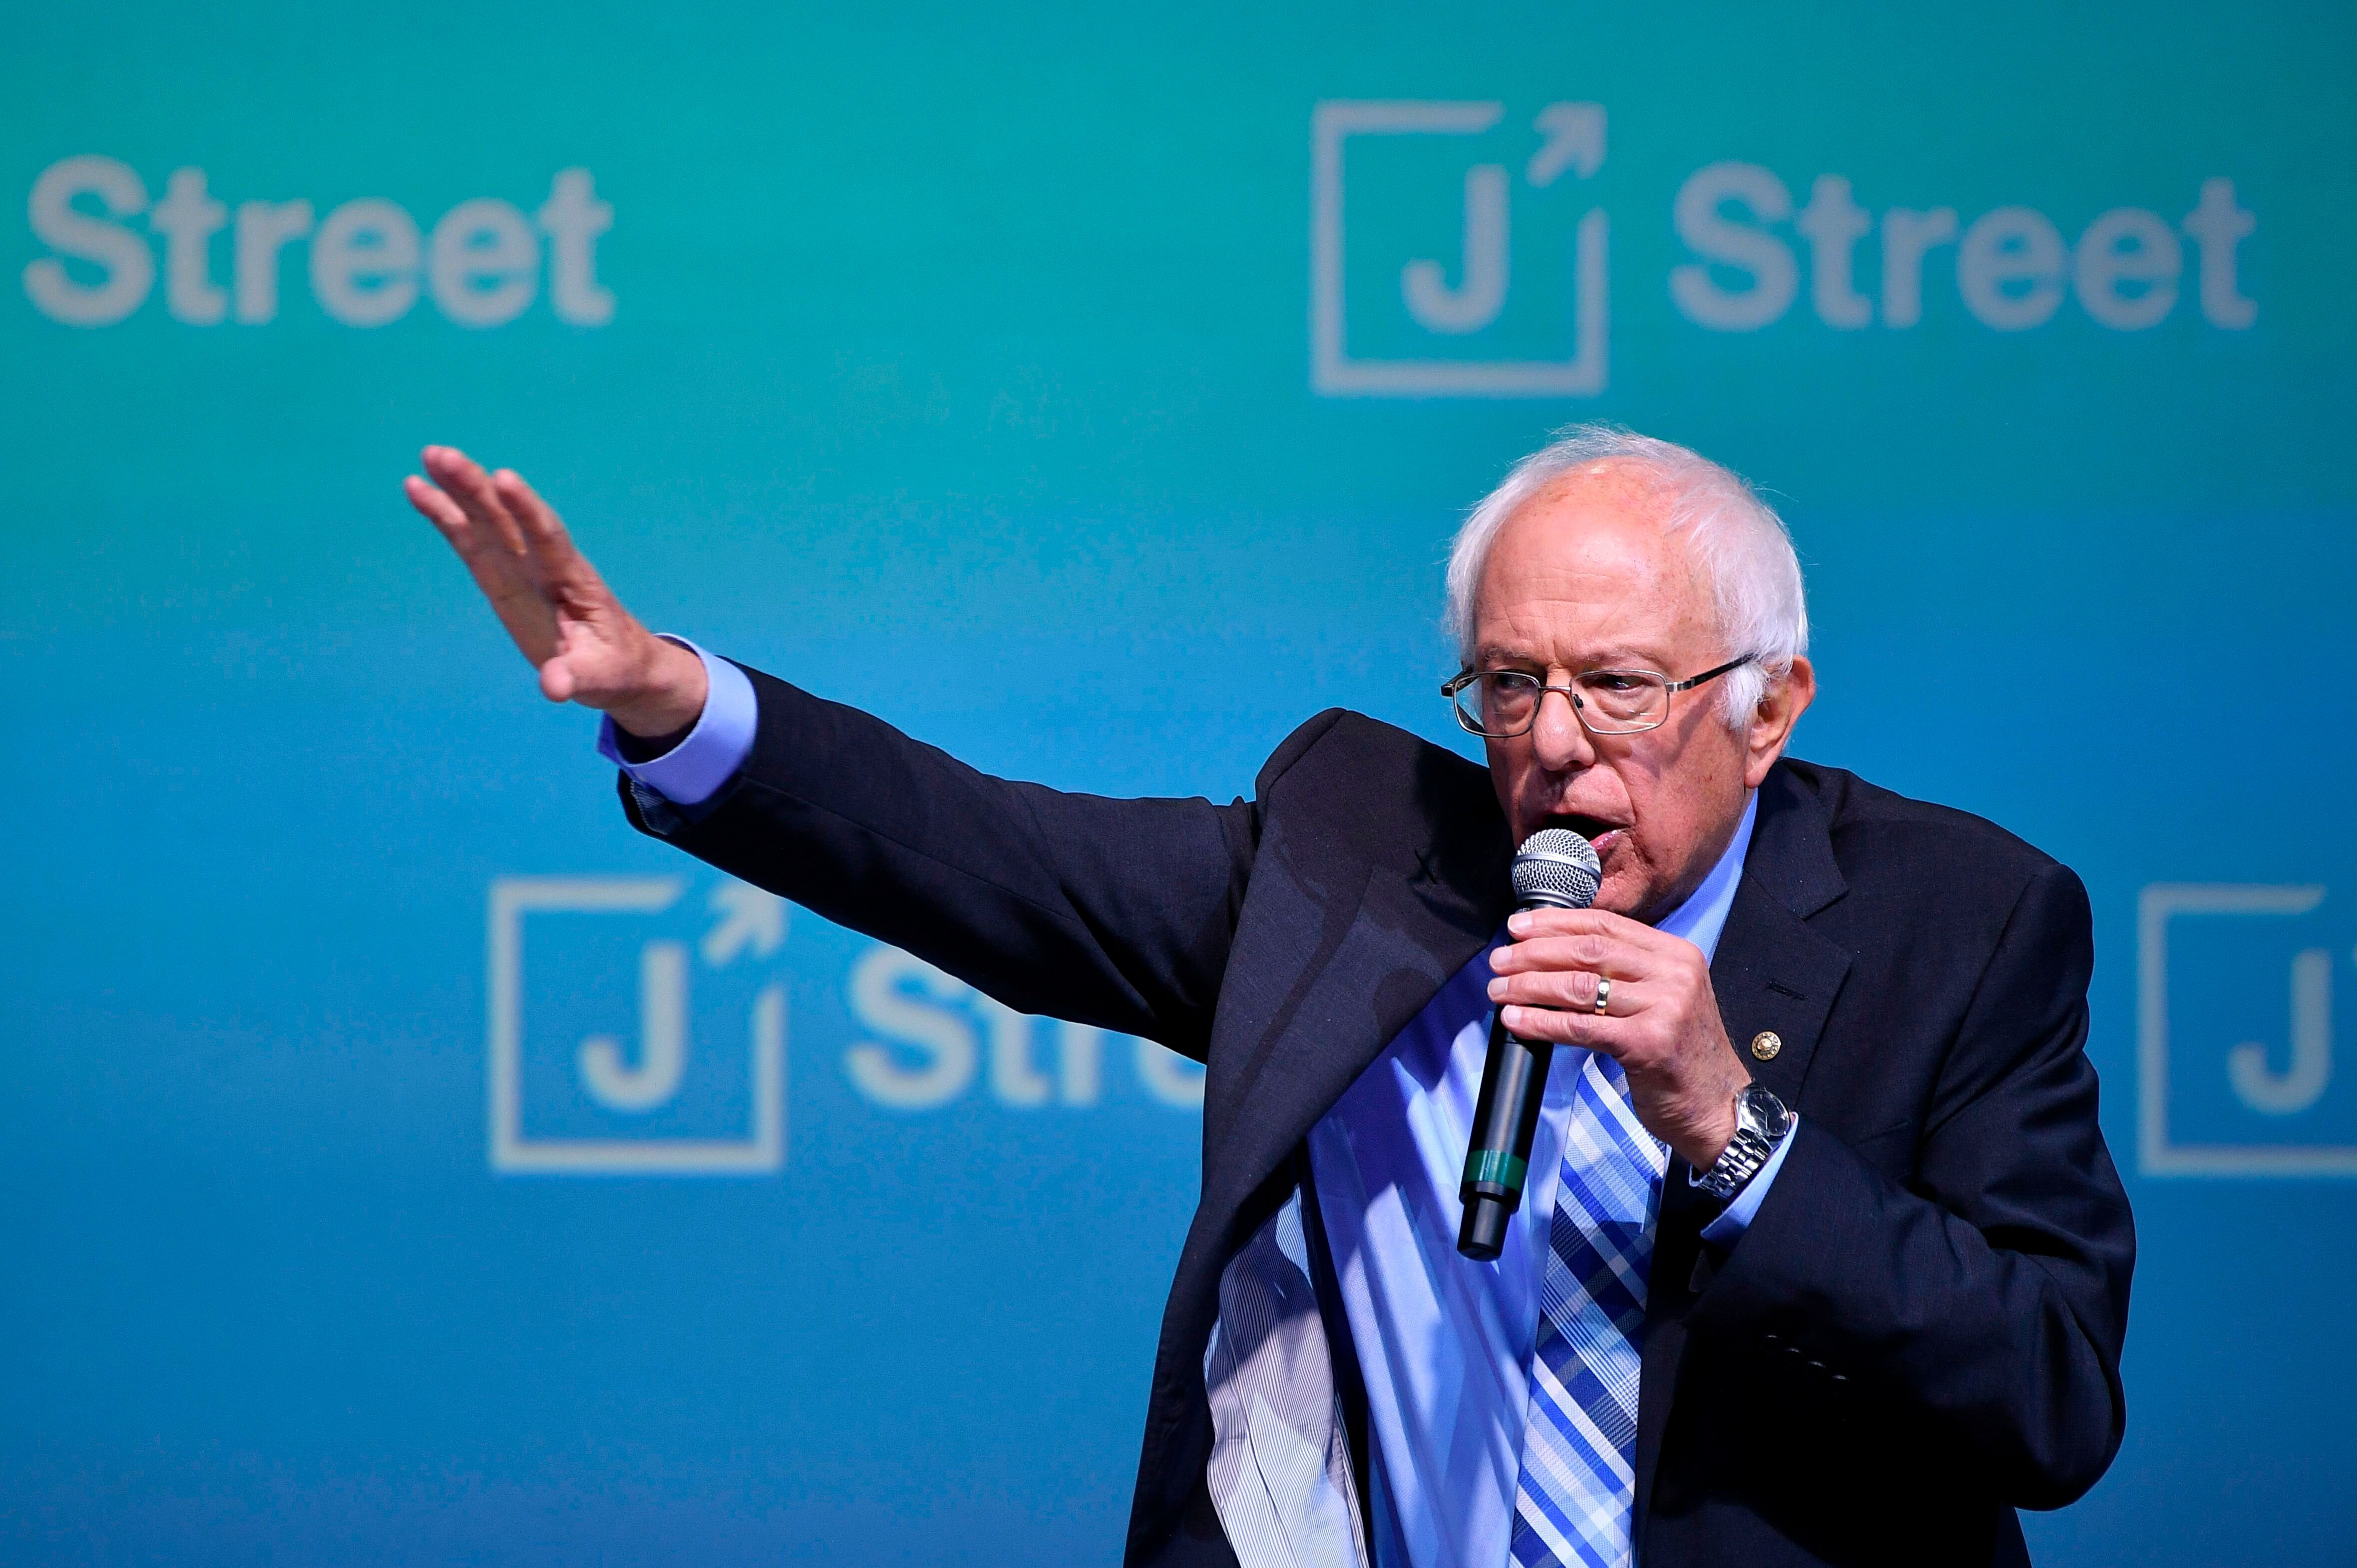 Sen. Bernie Sanders at the J Street National Conference in Washington, D.C., on Monday.